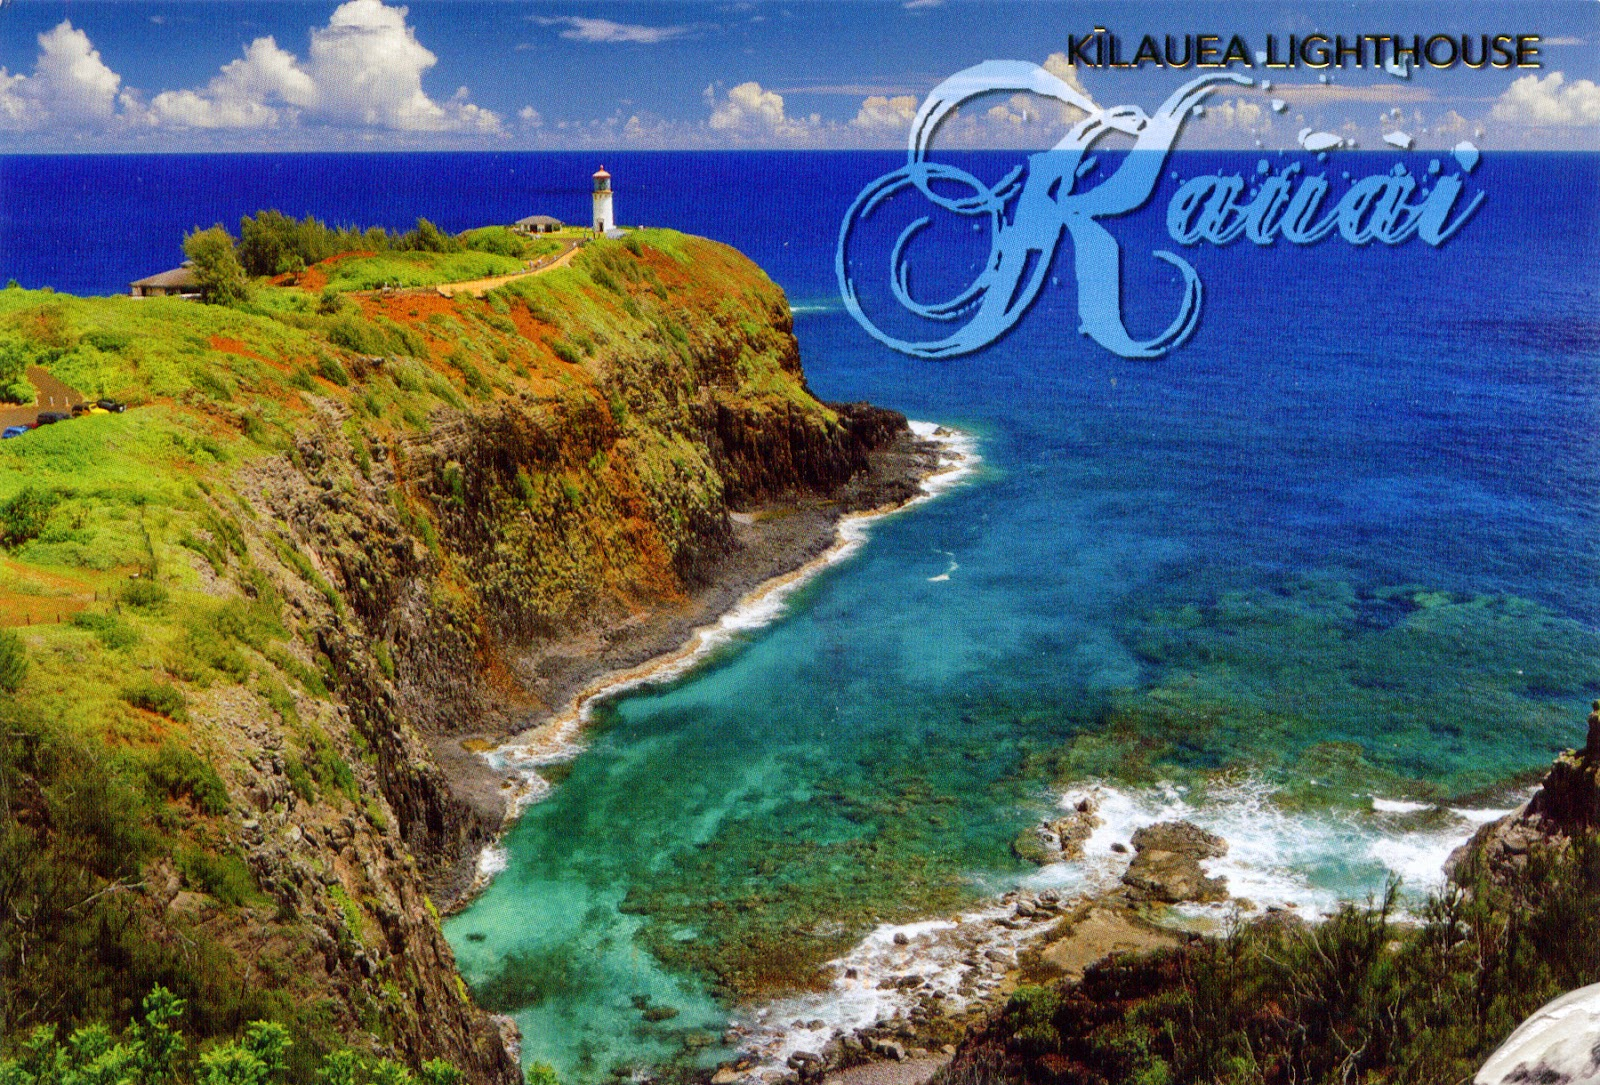 Kauai Hawaii United States  City new picture : UNITED STATES Hawaii Kauai Kilauea Lighthouse